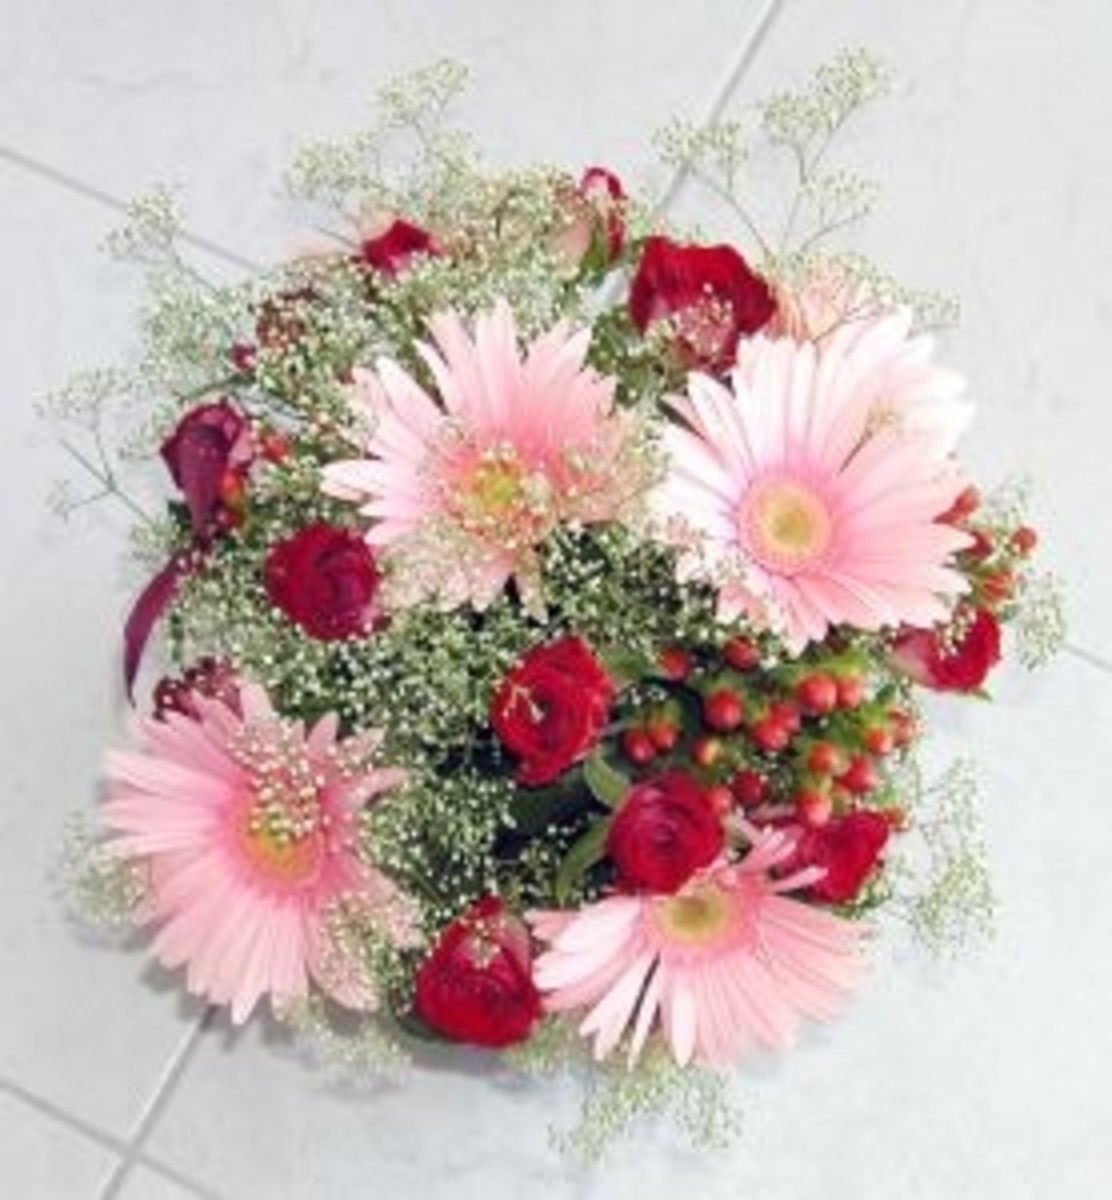 An example of a well balanced flower arrangement